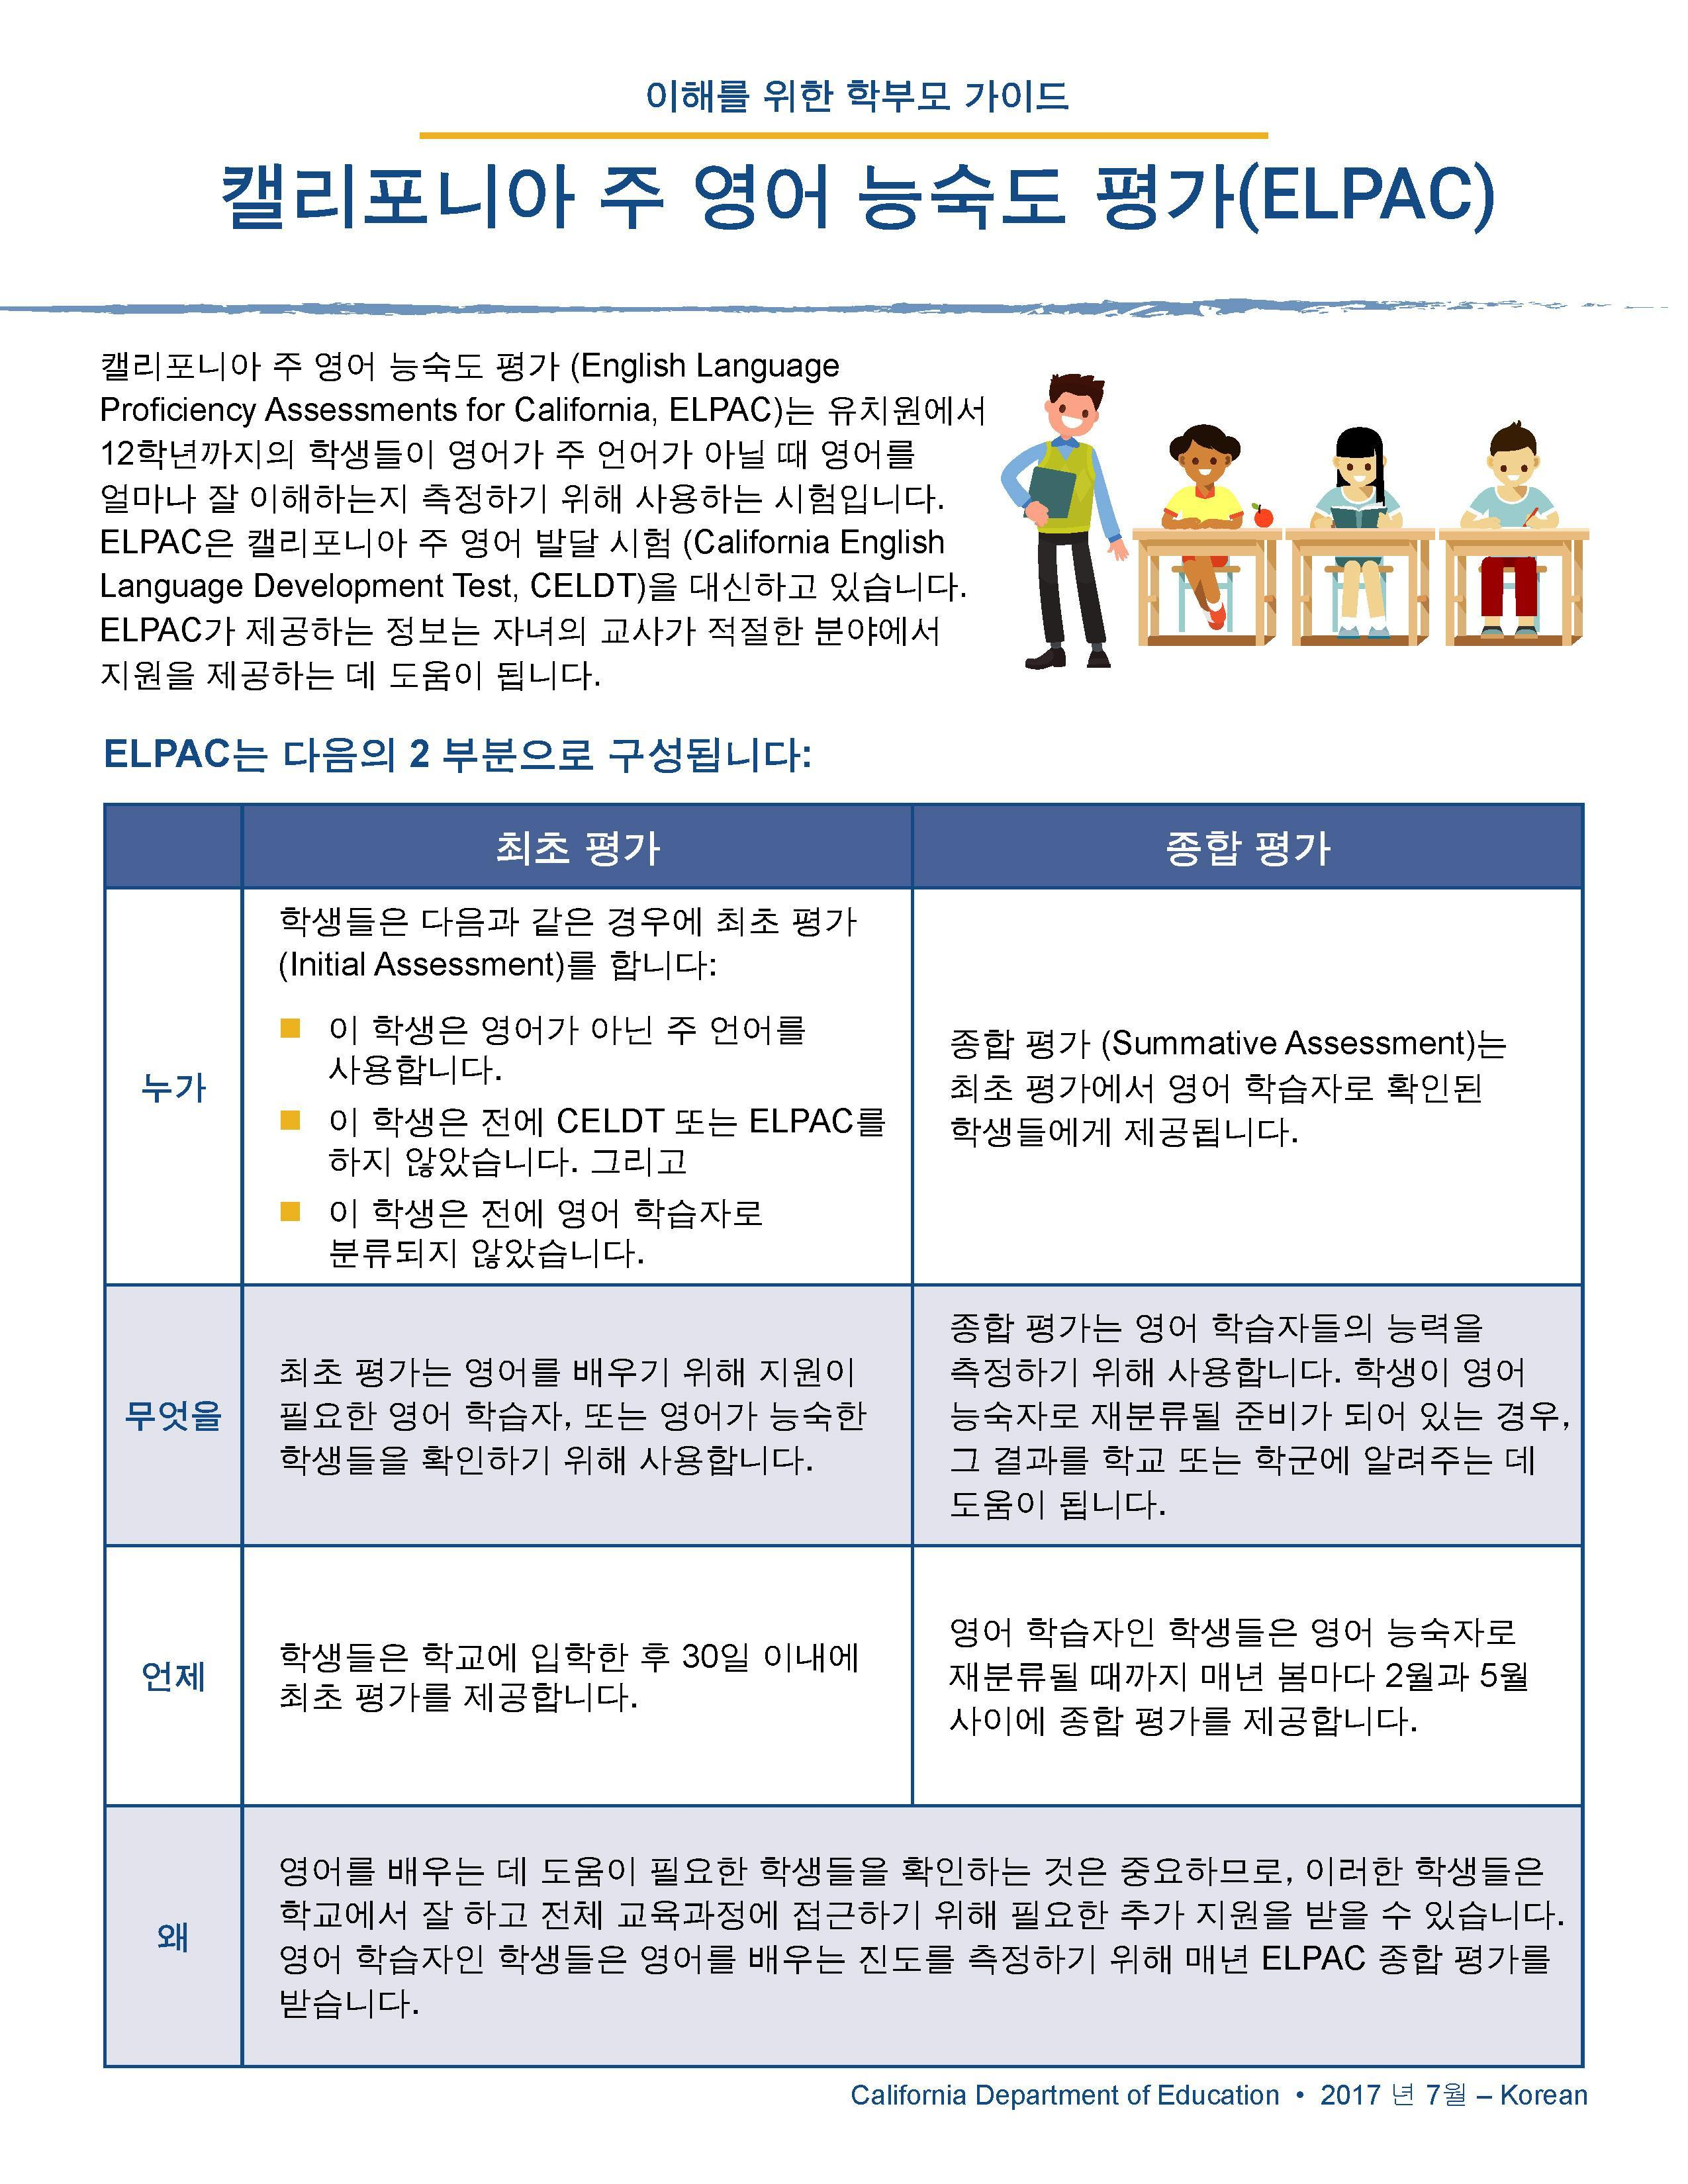 ELPAC Parent Guide Korean Page 1